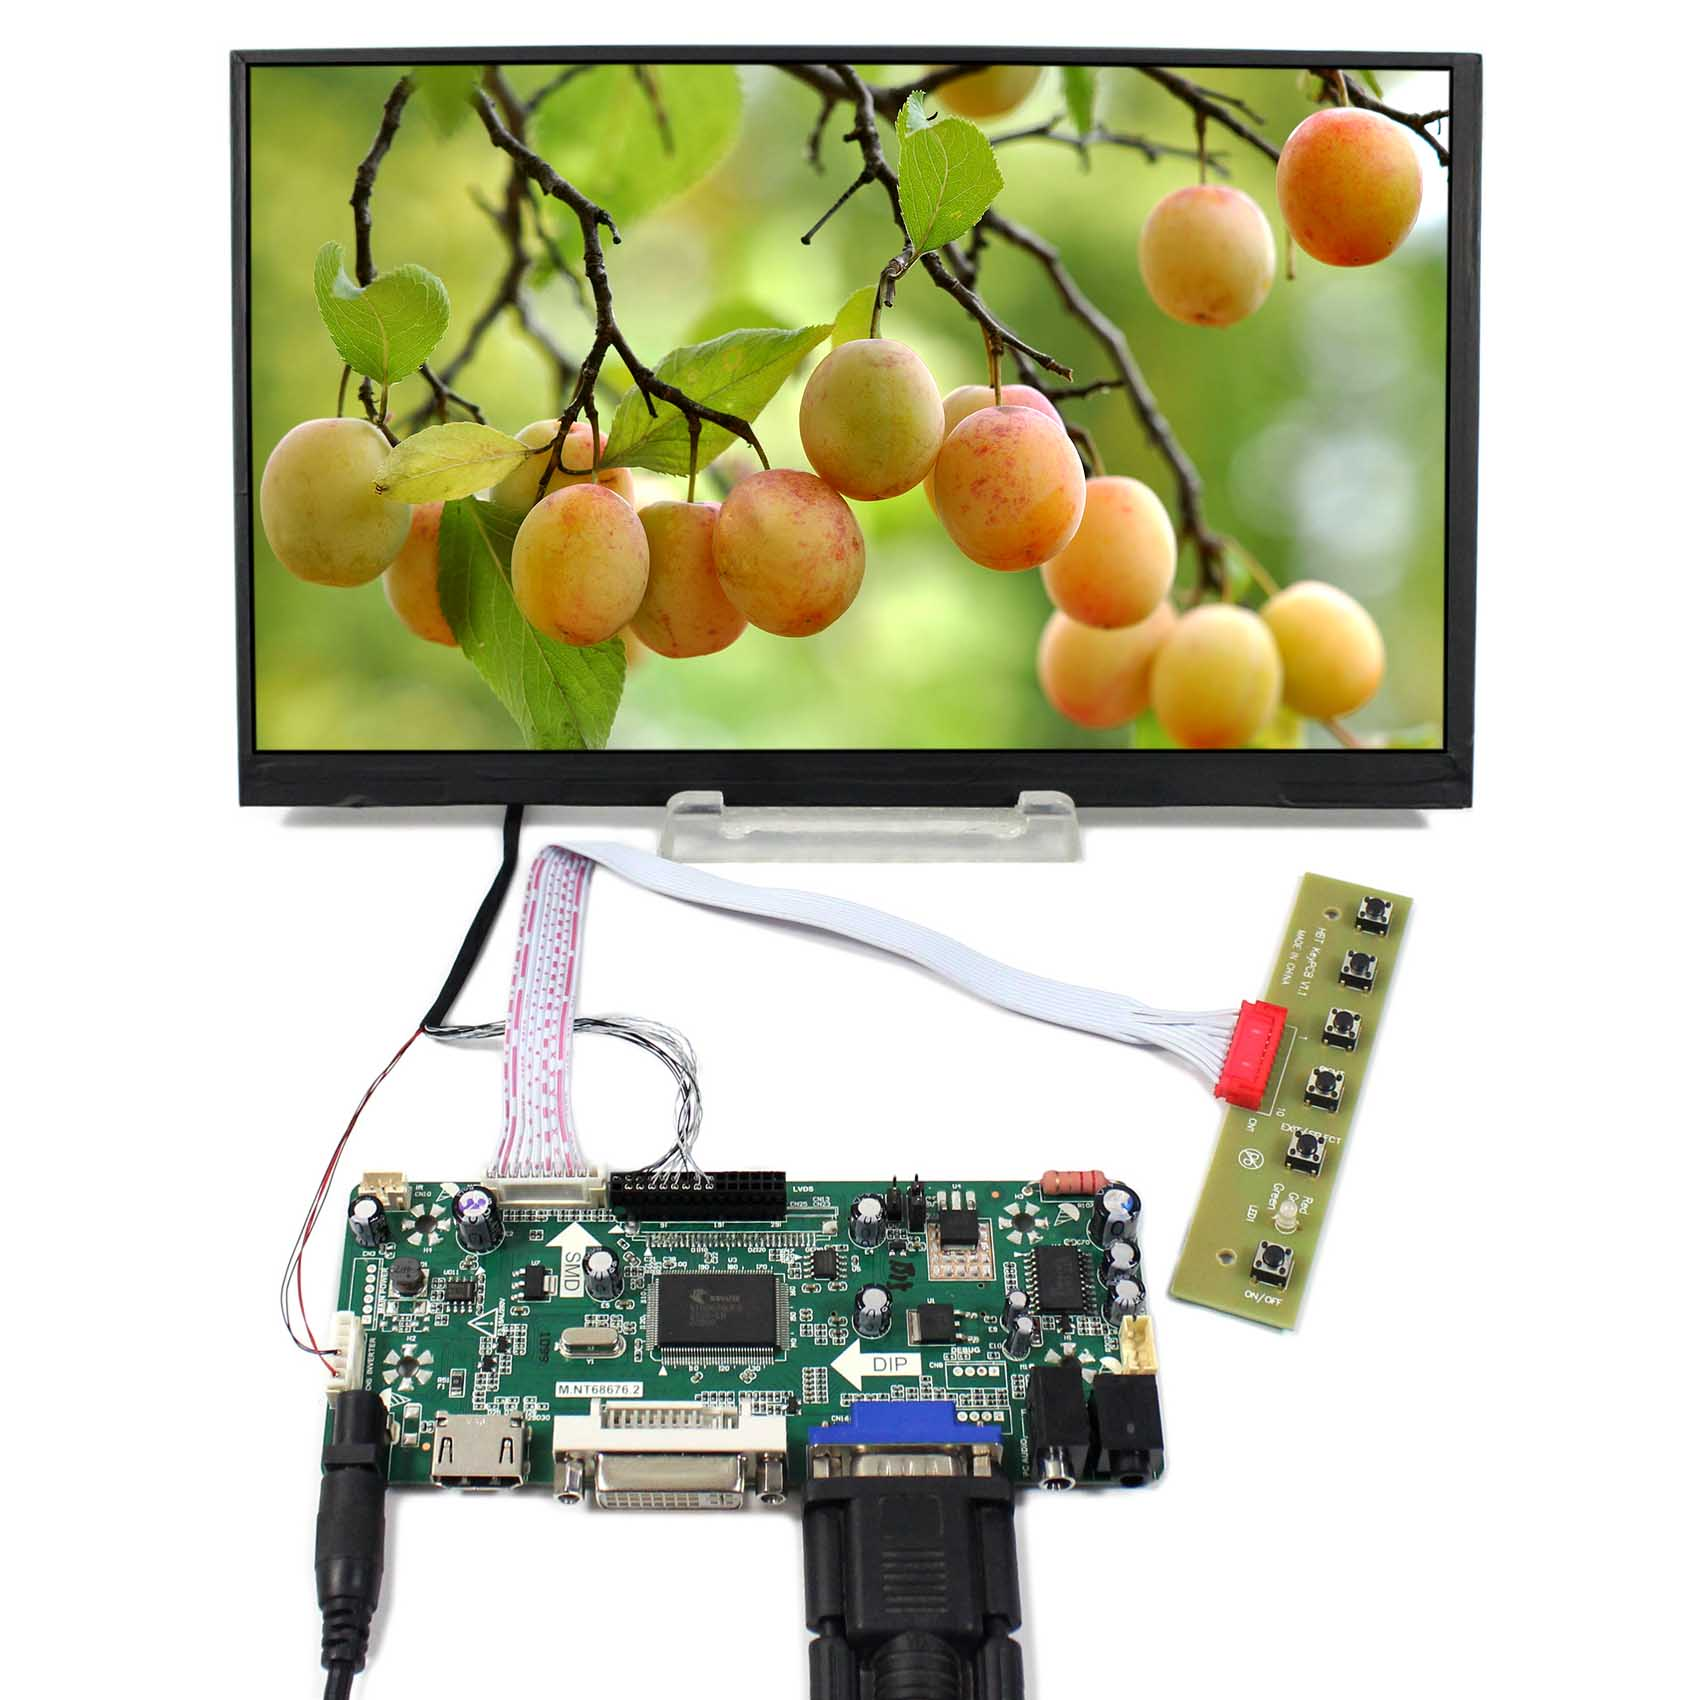 HDMI+DVI+VGA+Audio LCD Controller Board With 10.6inch 1366x768 LTL106AL01 IPS LCD Screen hdmi vga av audio usb control board 10 6inch ltl106al01 1366 768 ips lcd panel screen model lcd for raspberry pi